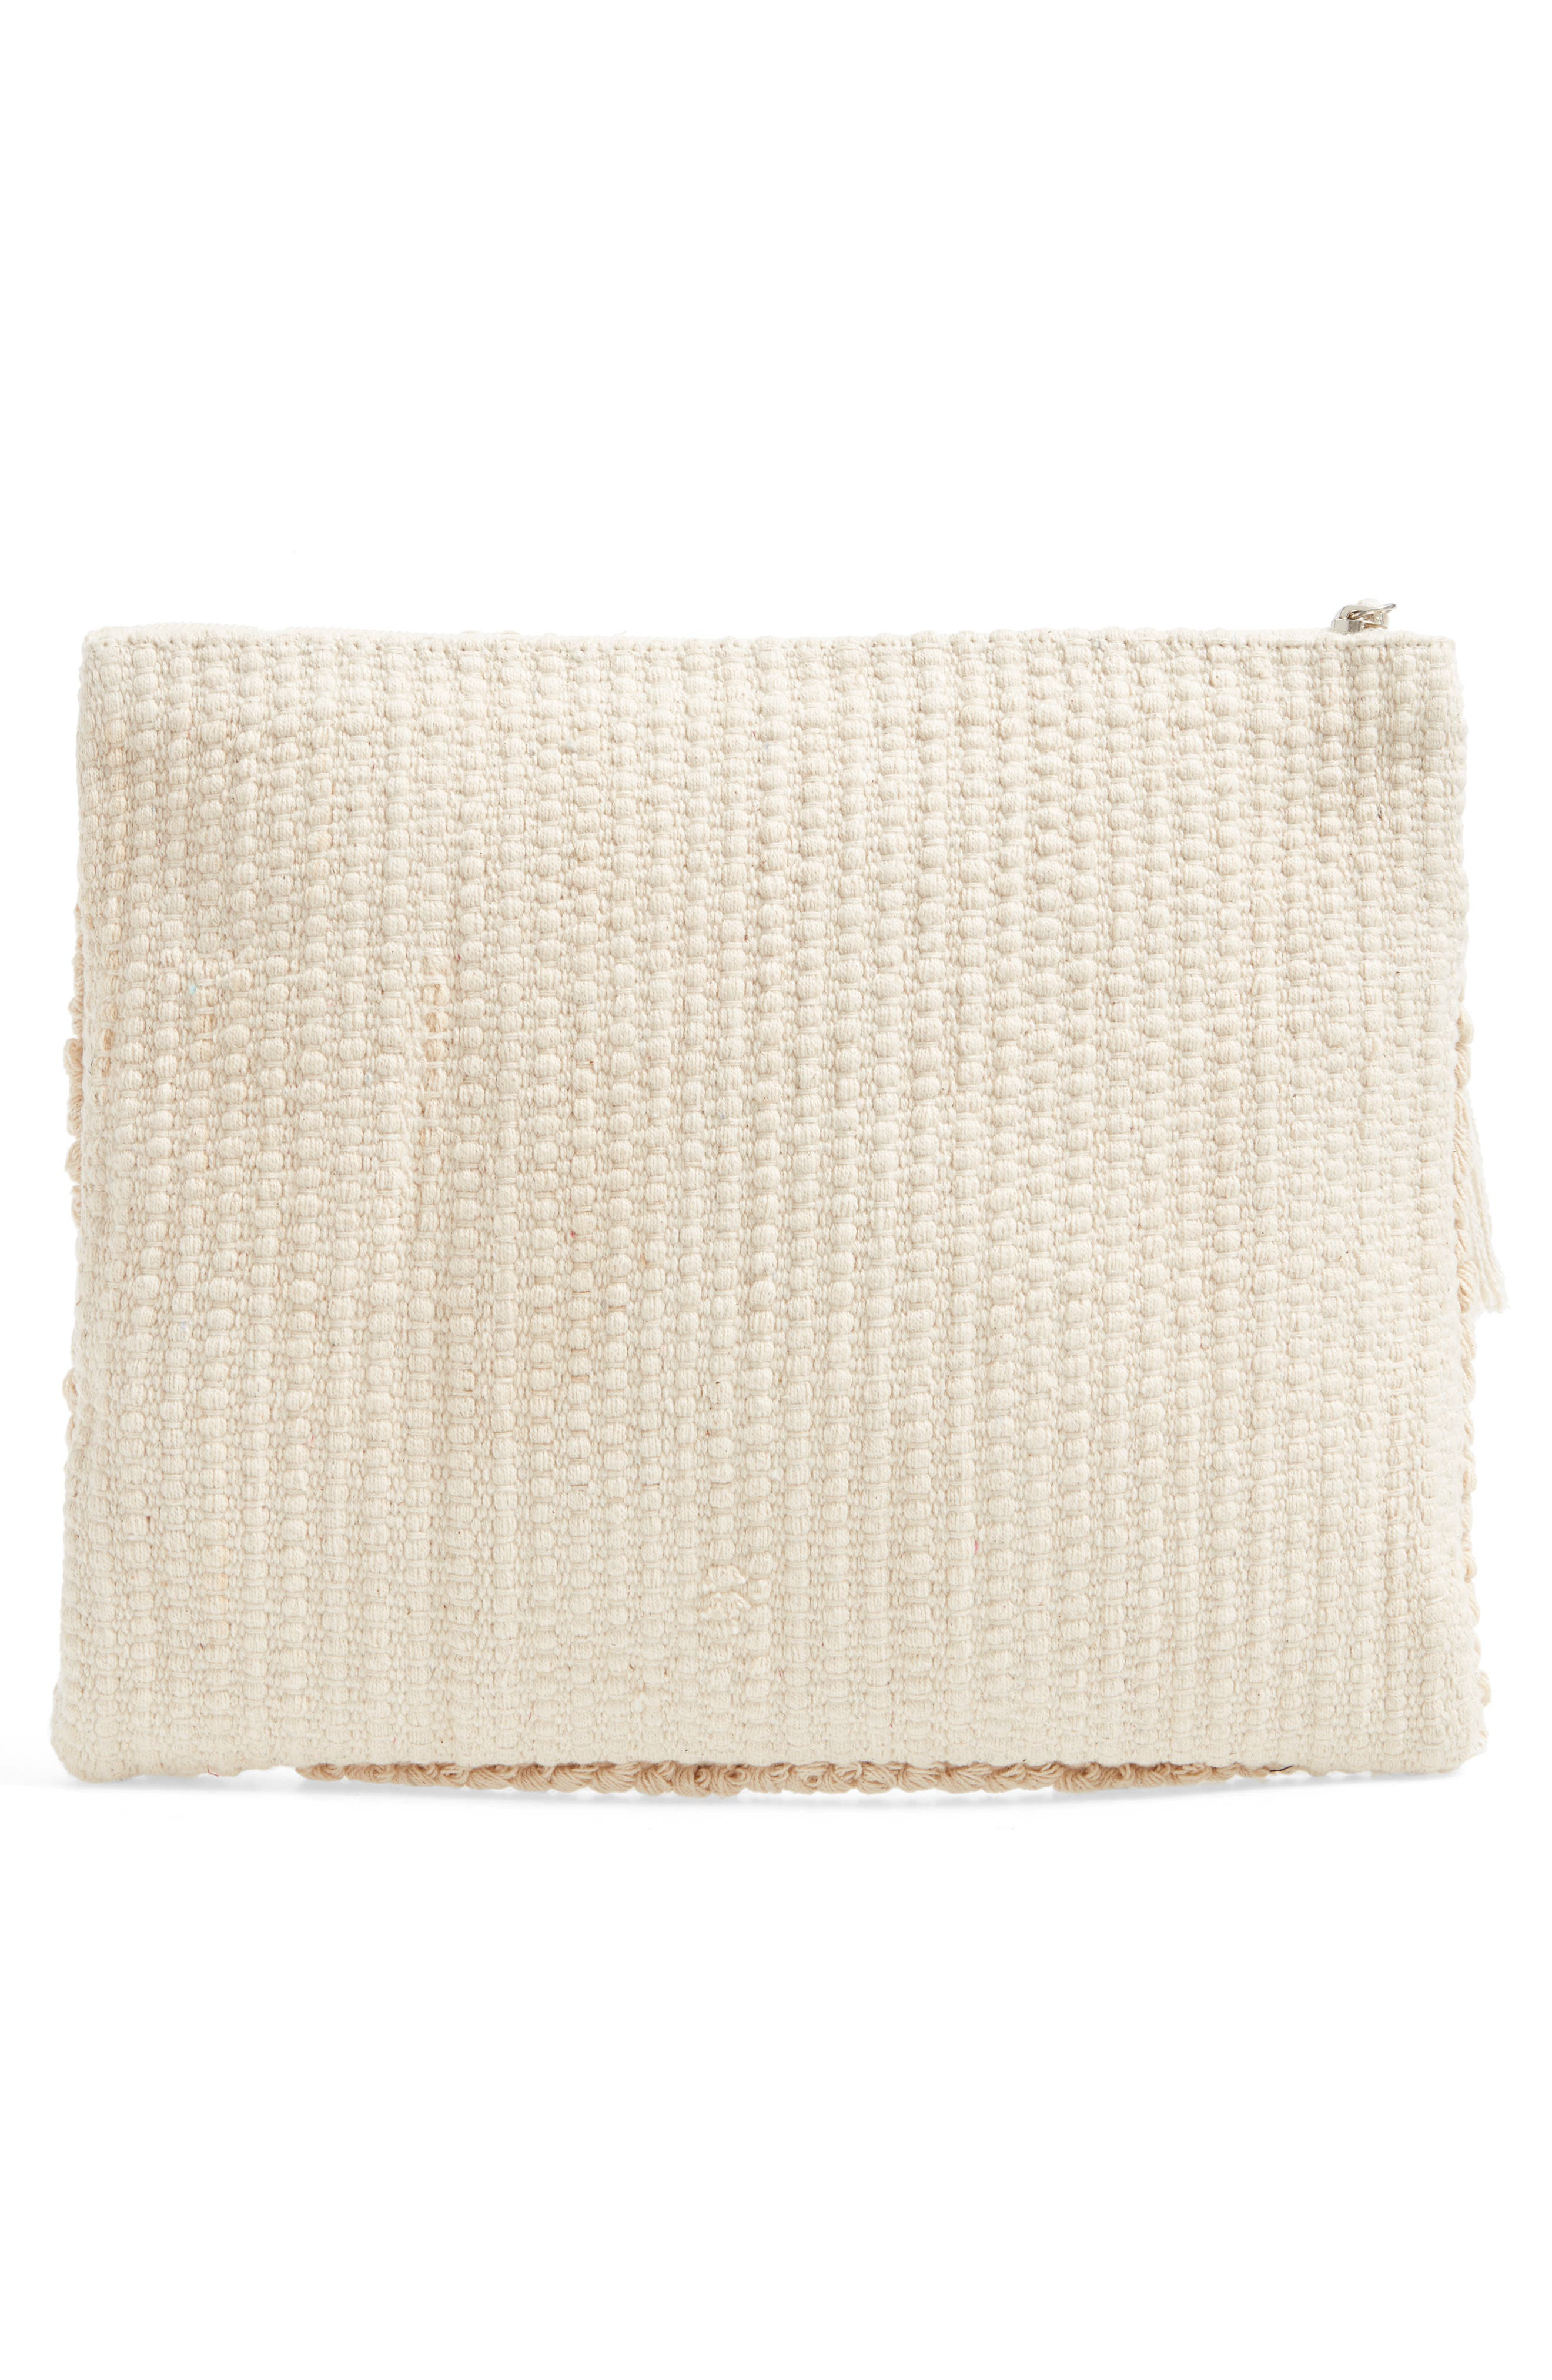 Palisades Tasseled Woven Clutch,                             Alternate thumbnail 13, color,